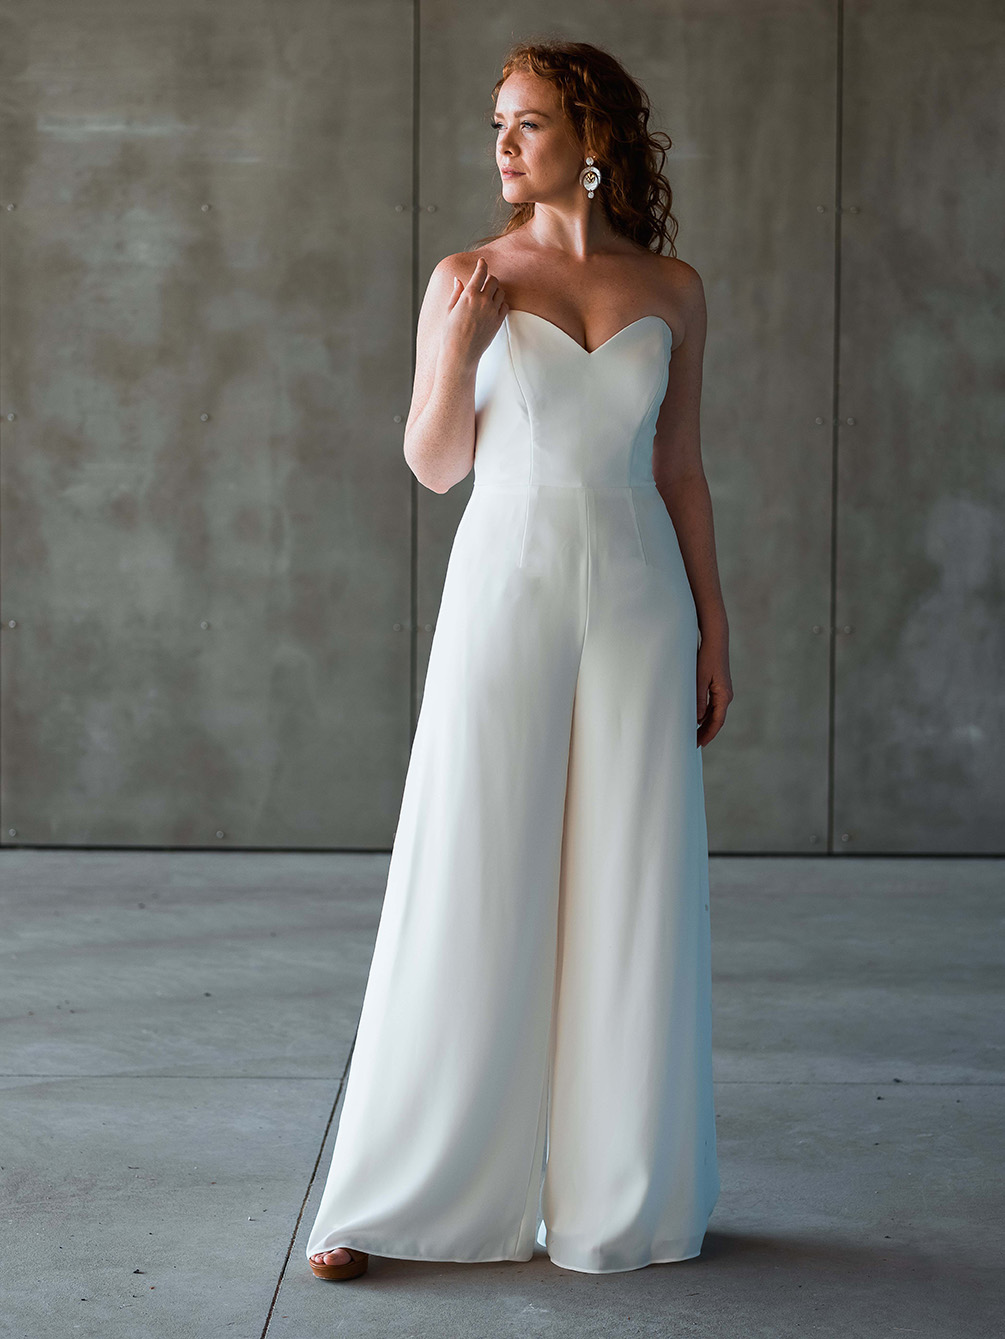 rebecca_schoneveld_owen_jumpsuit_clean_modern_sweetheart_neckline_wide_leg_4.jpg